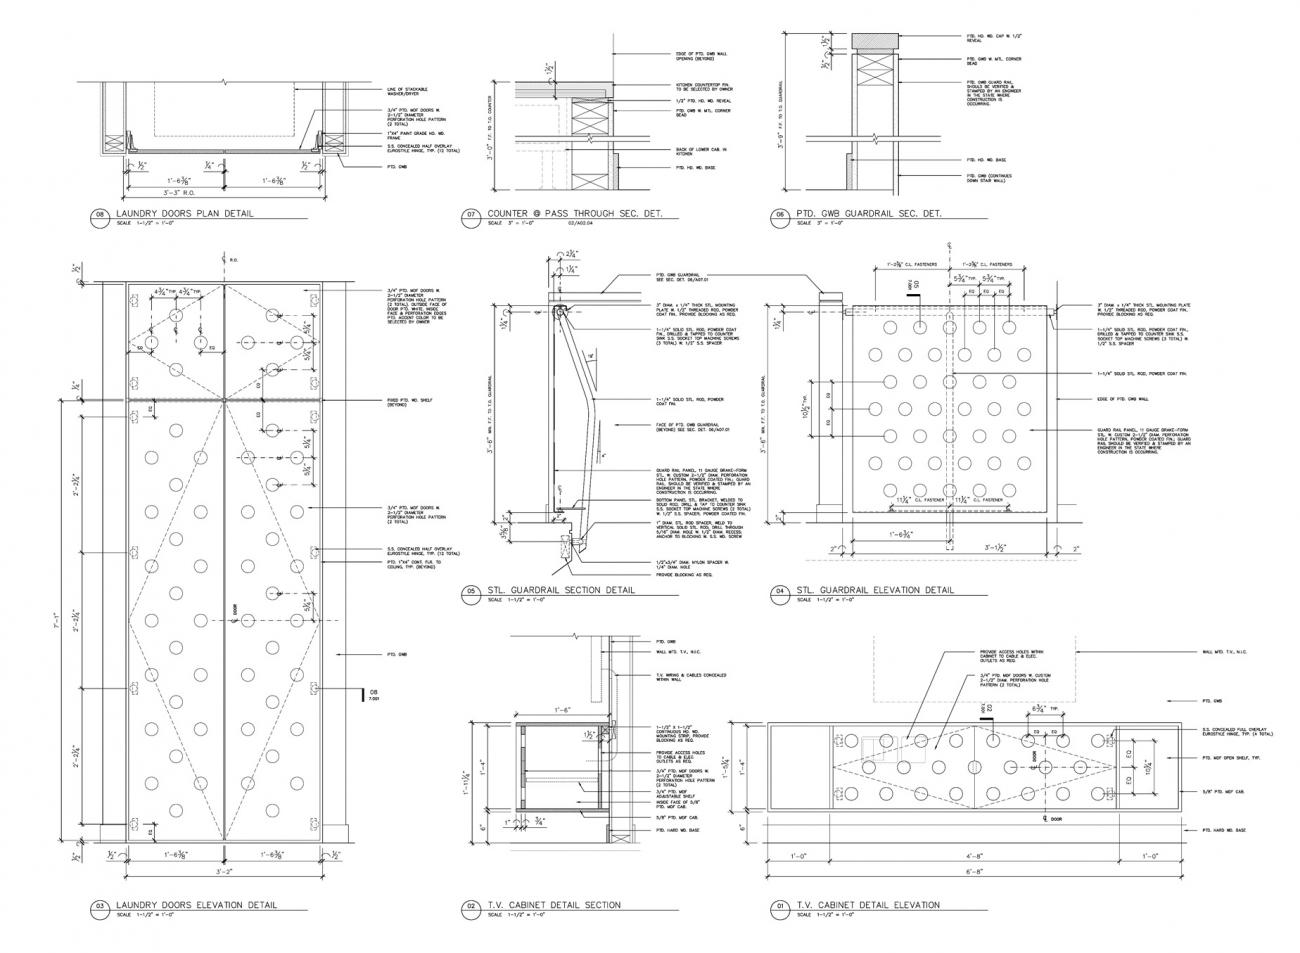 Details of custom brake-form perforated steel guard rail, doors, and wall-mounted millwork designed and fabricated by Interloop—Architecture